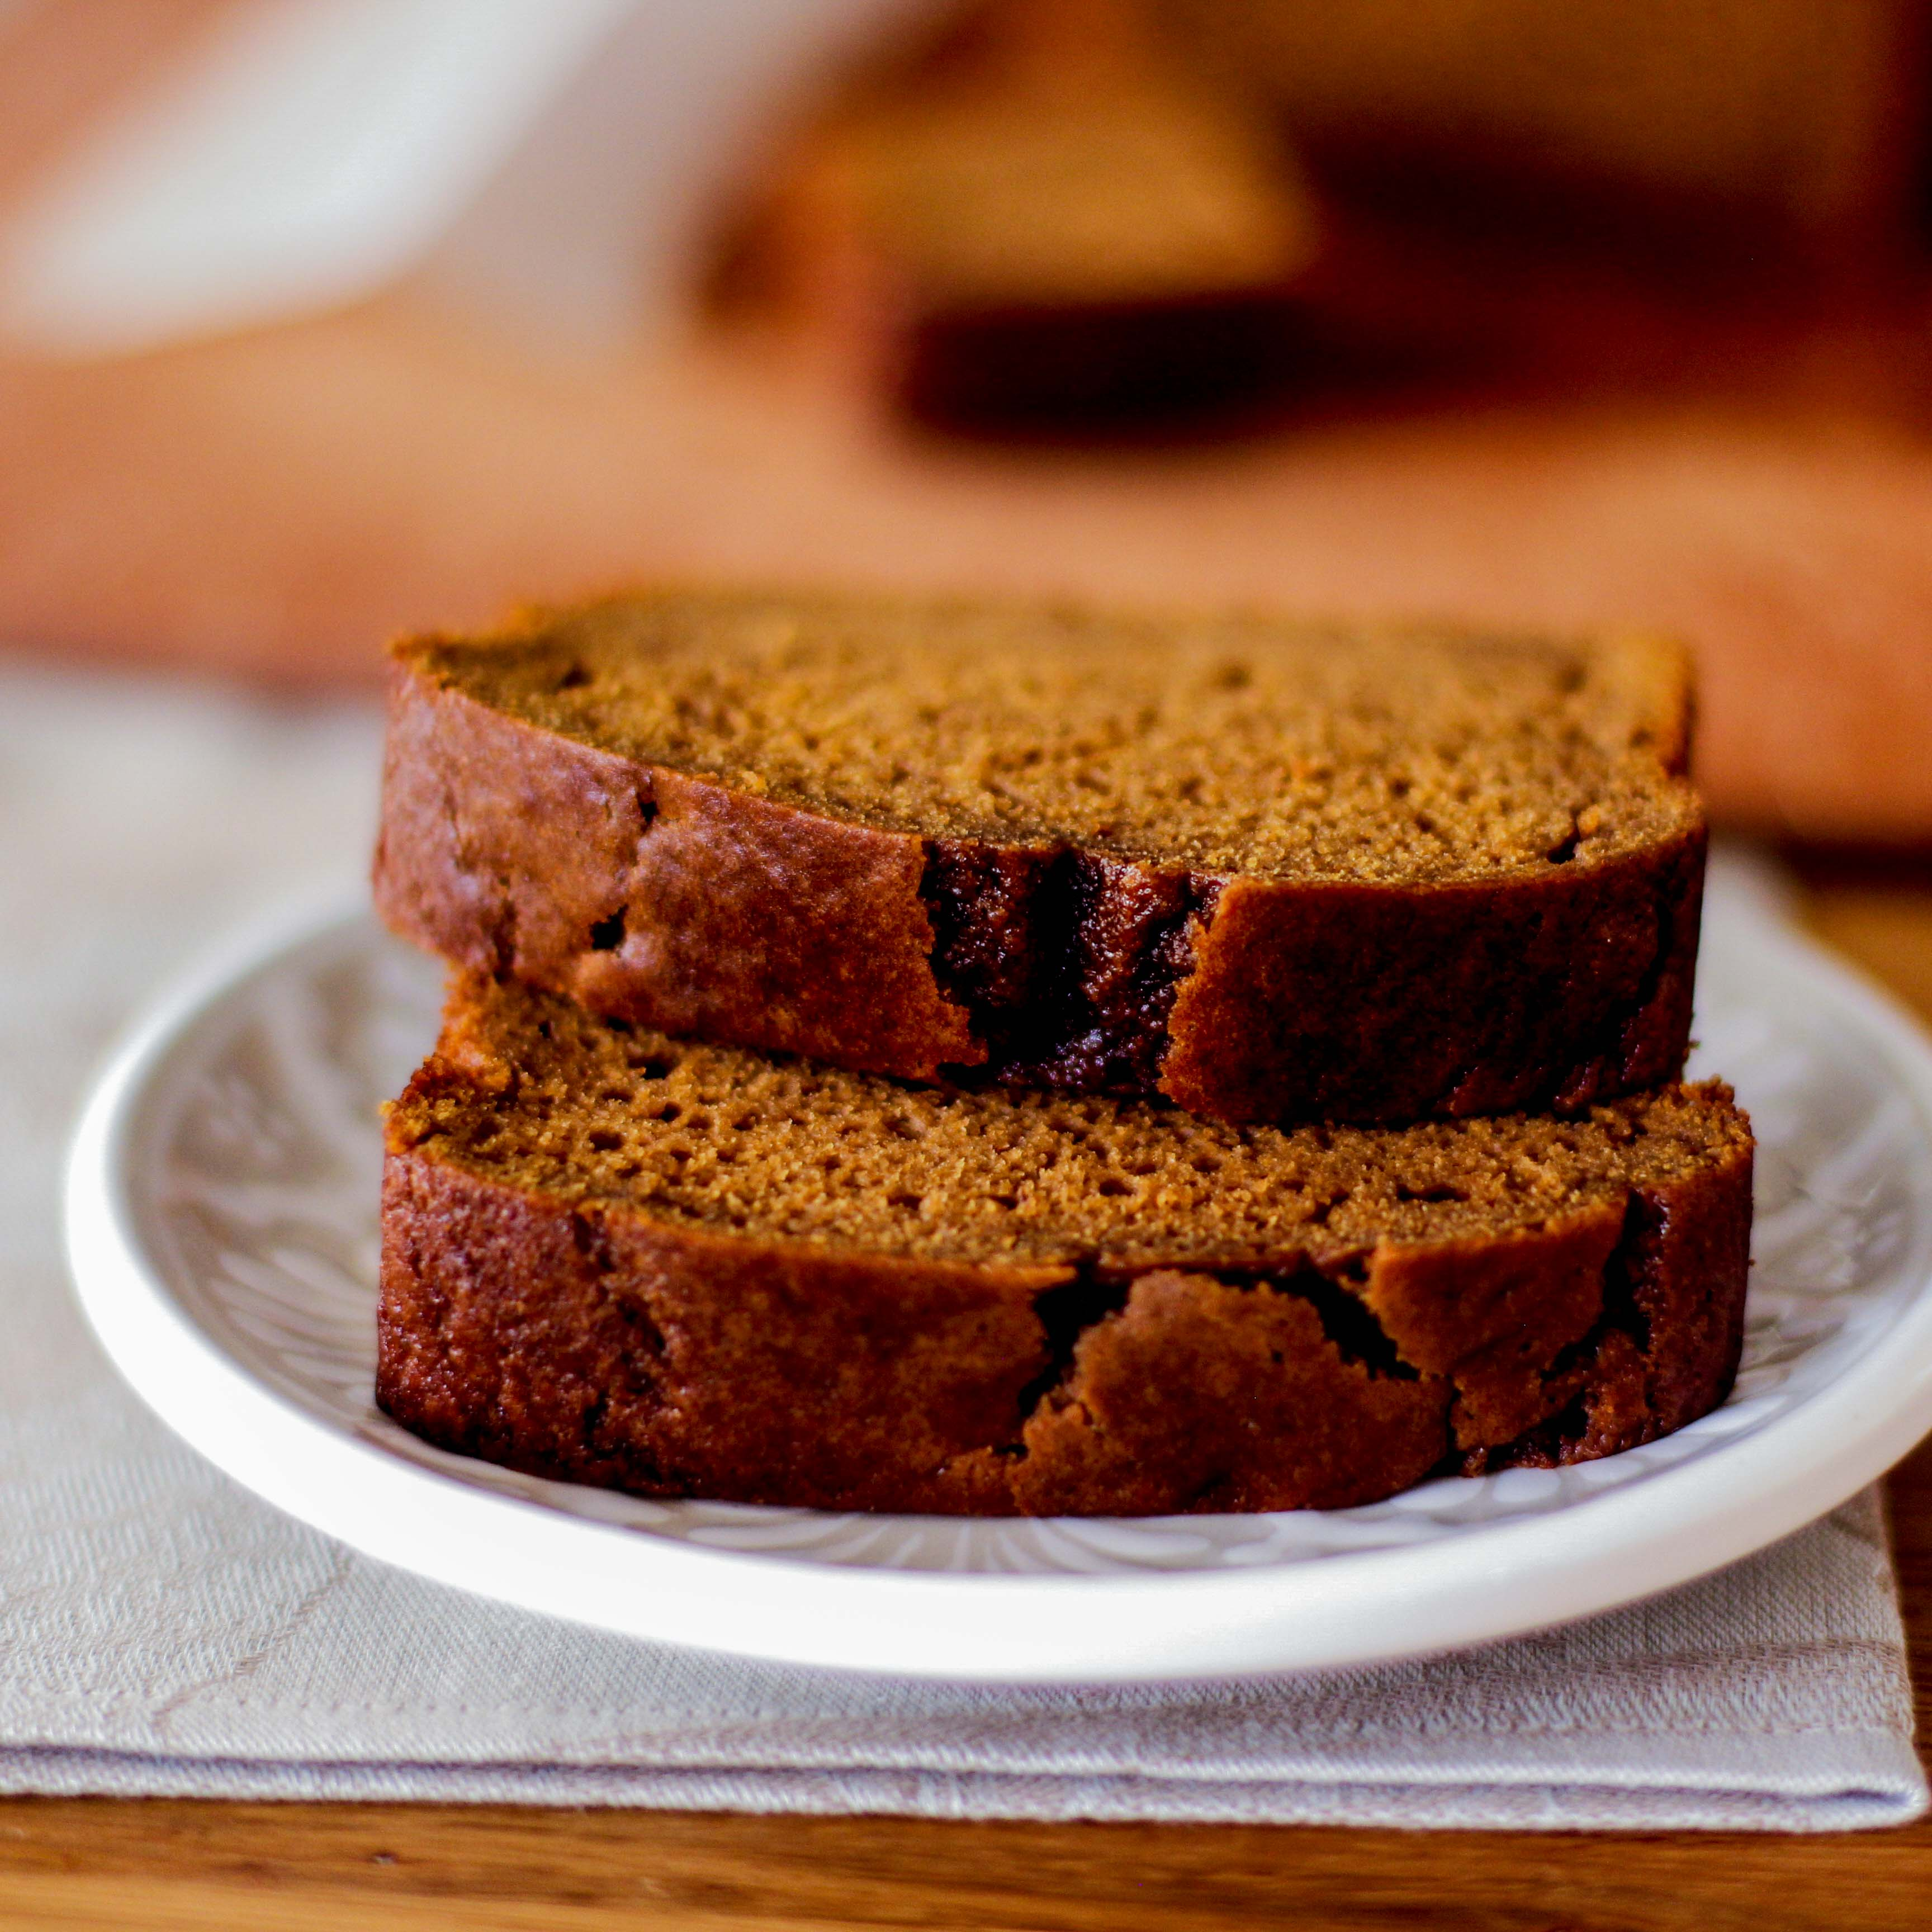 <p>This recipe mimics the popular pumpkin bread served at coffee bars across the country. Compared to a typical pumpkin bread, this recipe is 20% lower in fat and sugar, but it&#8217;s still rich in flavor thanks to Prune Juice Concentrate. This version is dairy-free, although melted butter can also be used in place of the [&hellip;]</p>